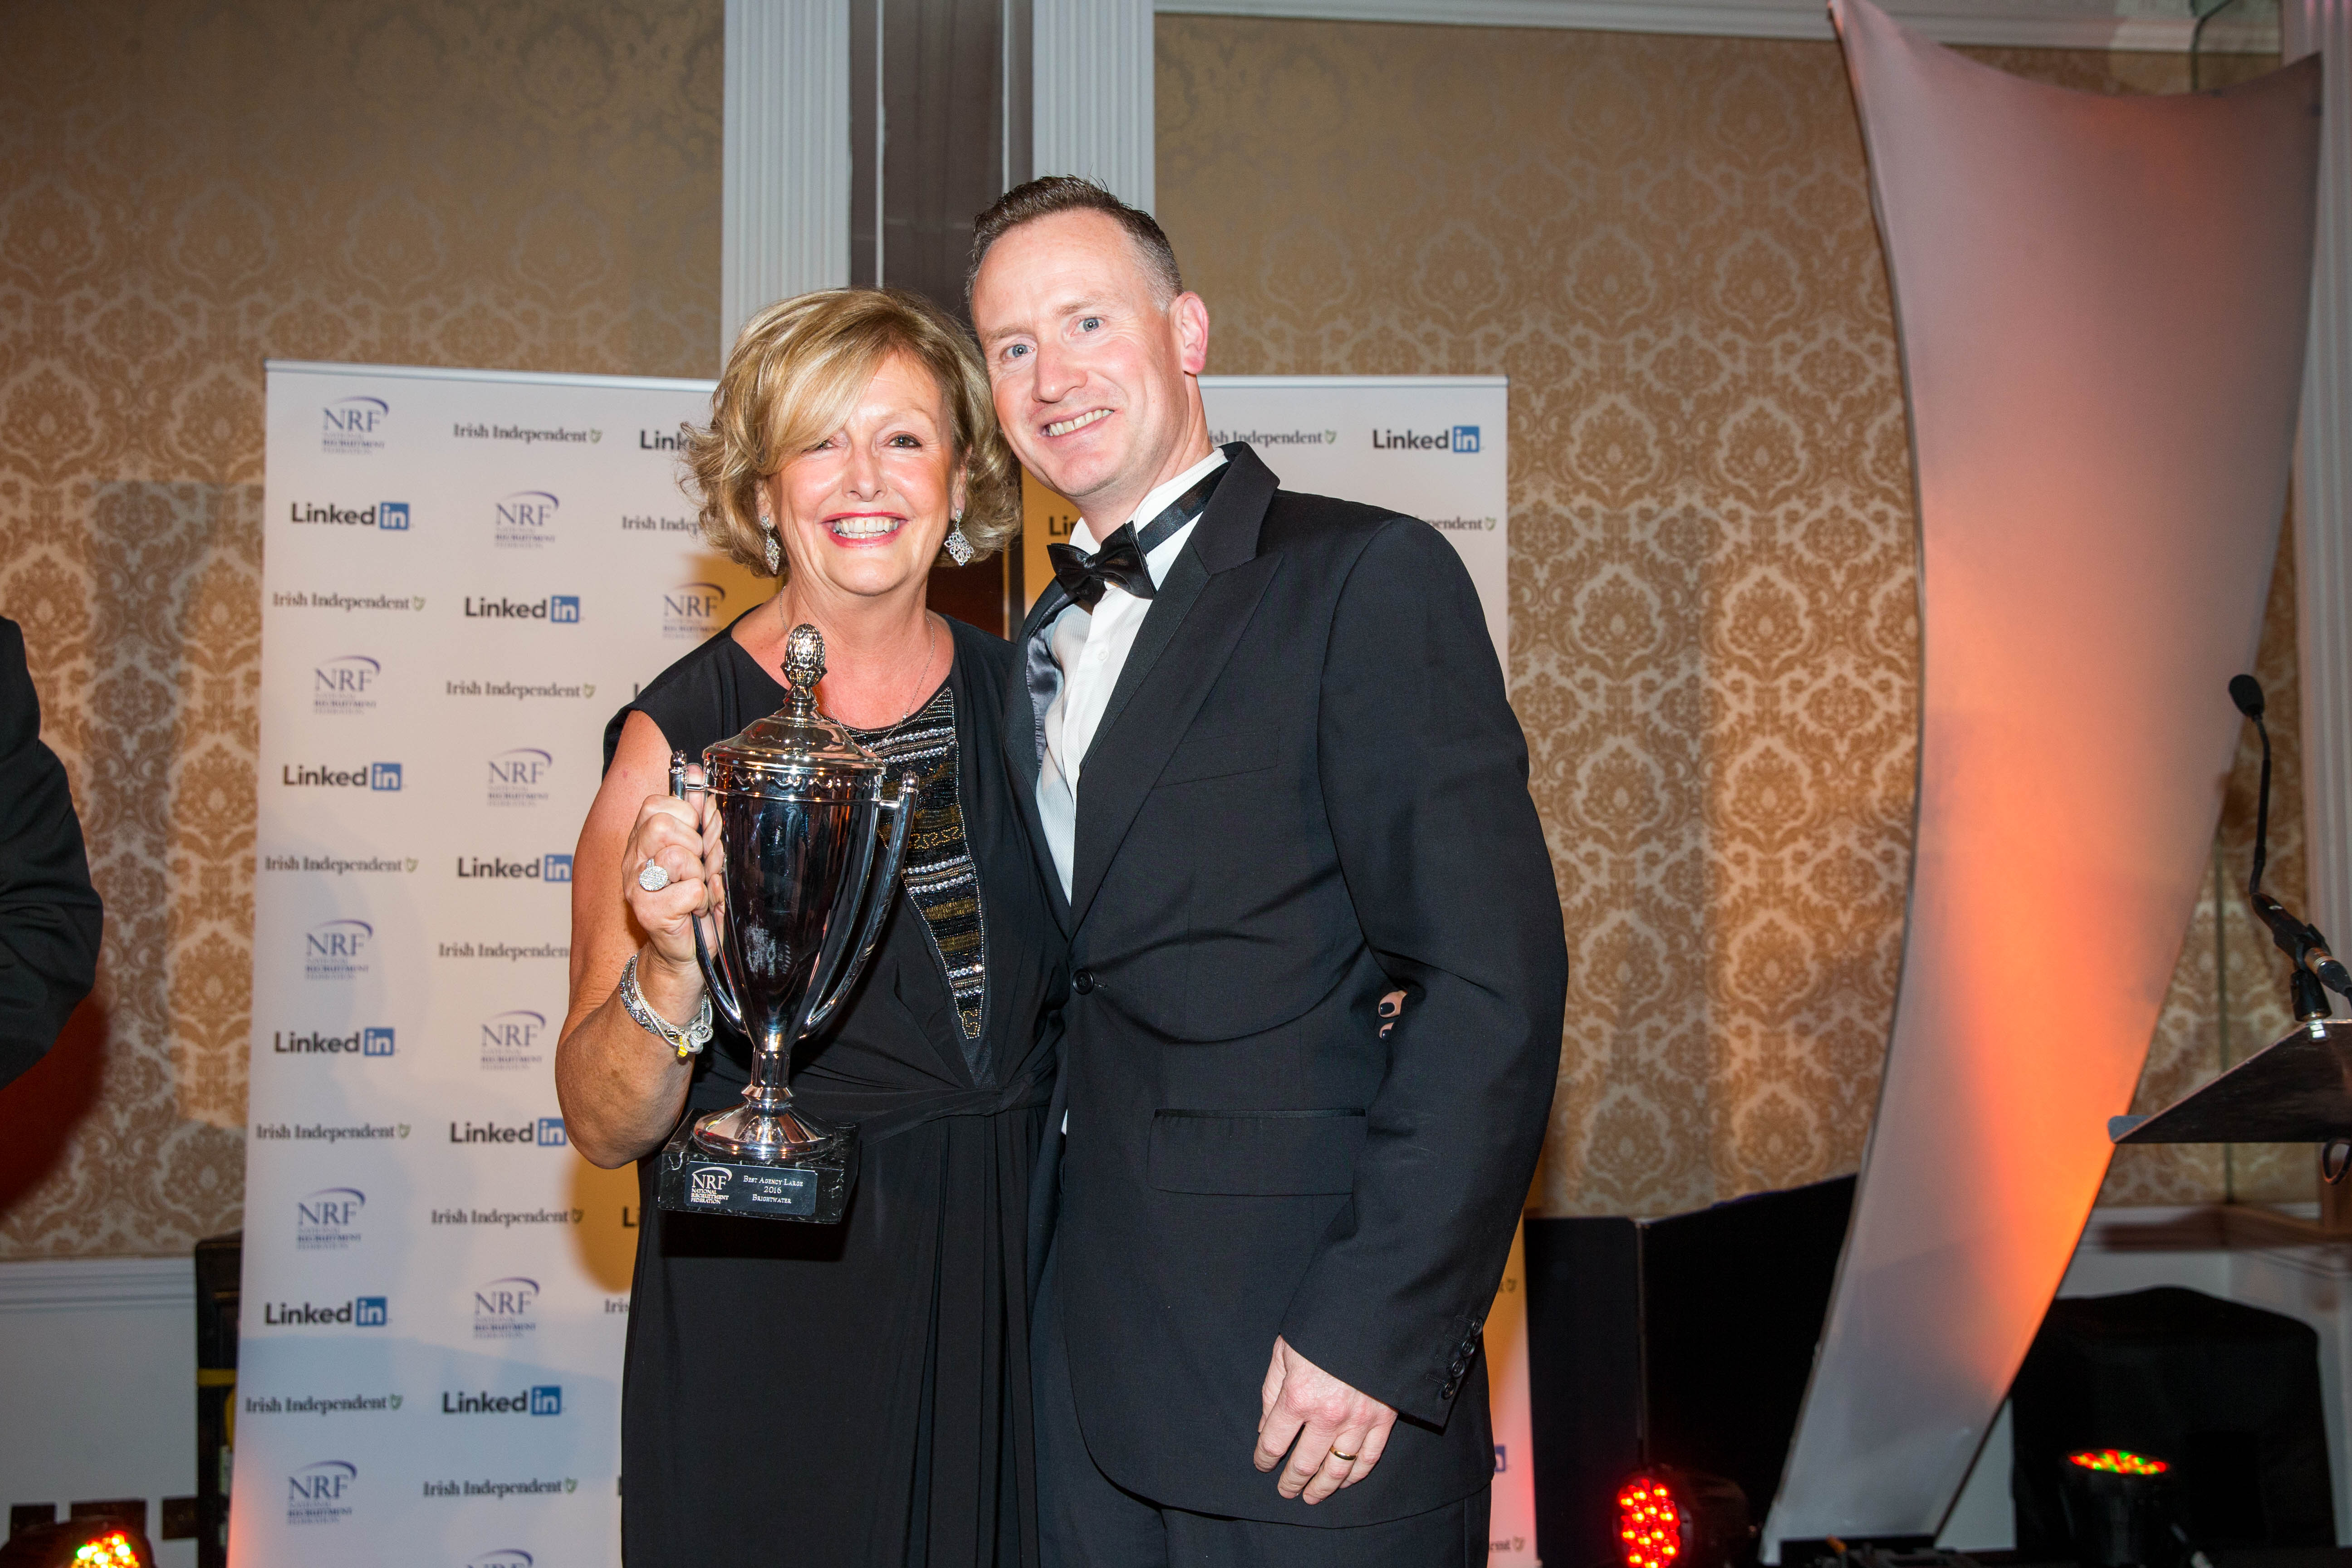 Barbara McGrath, MD & John O'Donnell at the NRF Awards